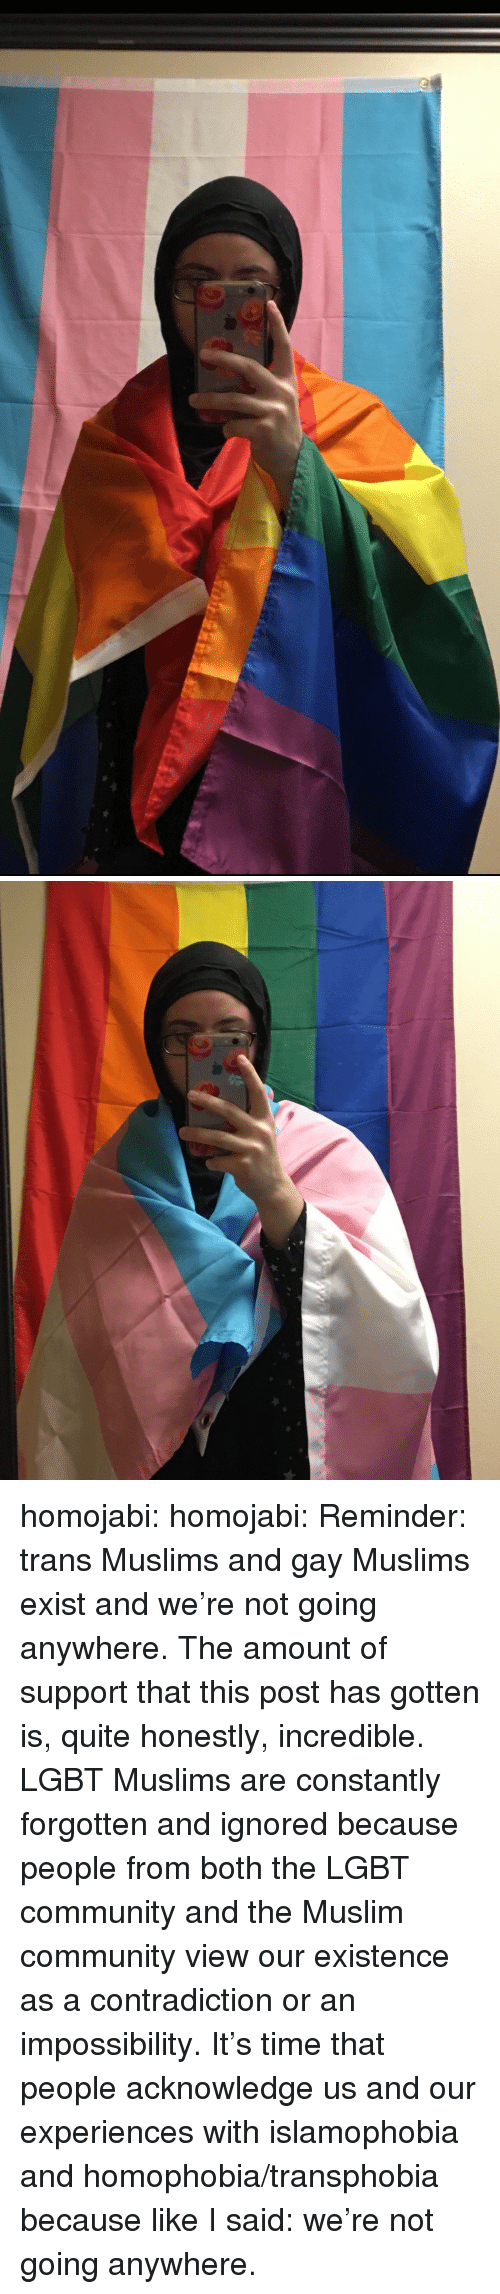 Community, Lgbt, and Muslim: homojabi: homojabi: Reminder: trans Muslims and gay Muslims exist and we're not going anywhere. The amount of support that this post has gotten is, quite honestly, incredible. LGBT Muslims are constantly forgotten and ignored because people from both the LGBT community and the Muslim community view our existence as a contradiction or an impossibility. It's time that people acknowledge us and our experiences with islamophobia and homophobia/transphobia because like I said: we're not going anywhere.